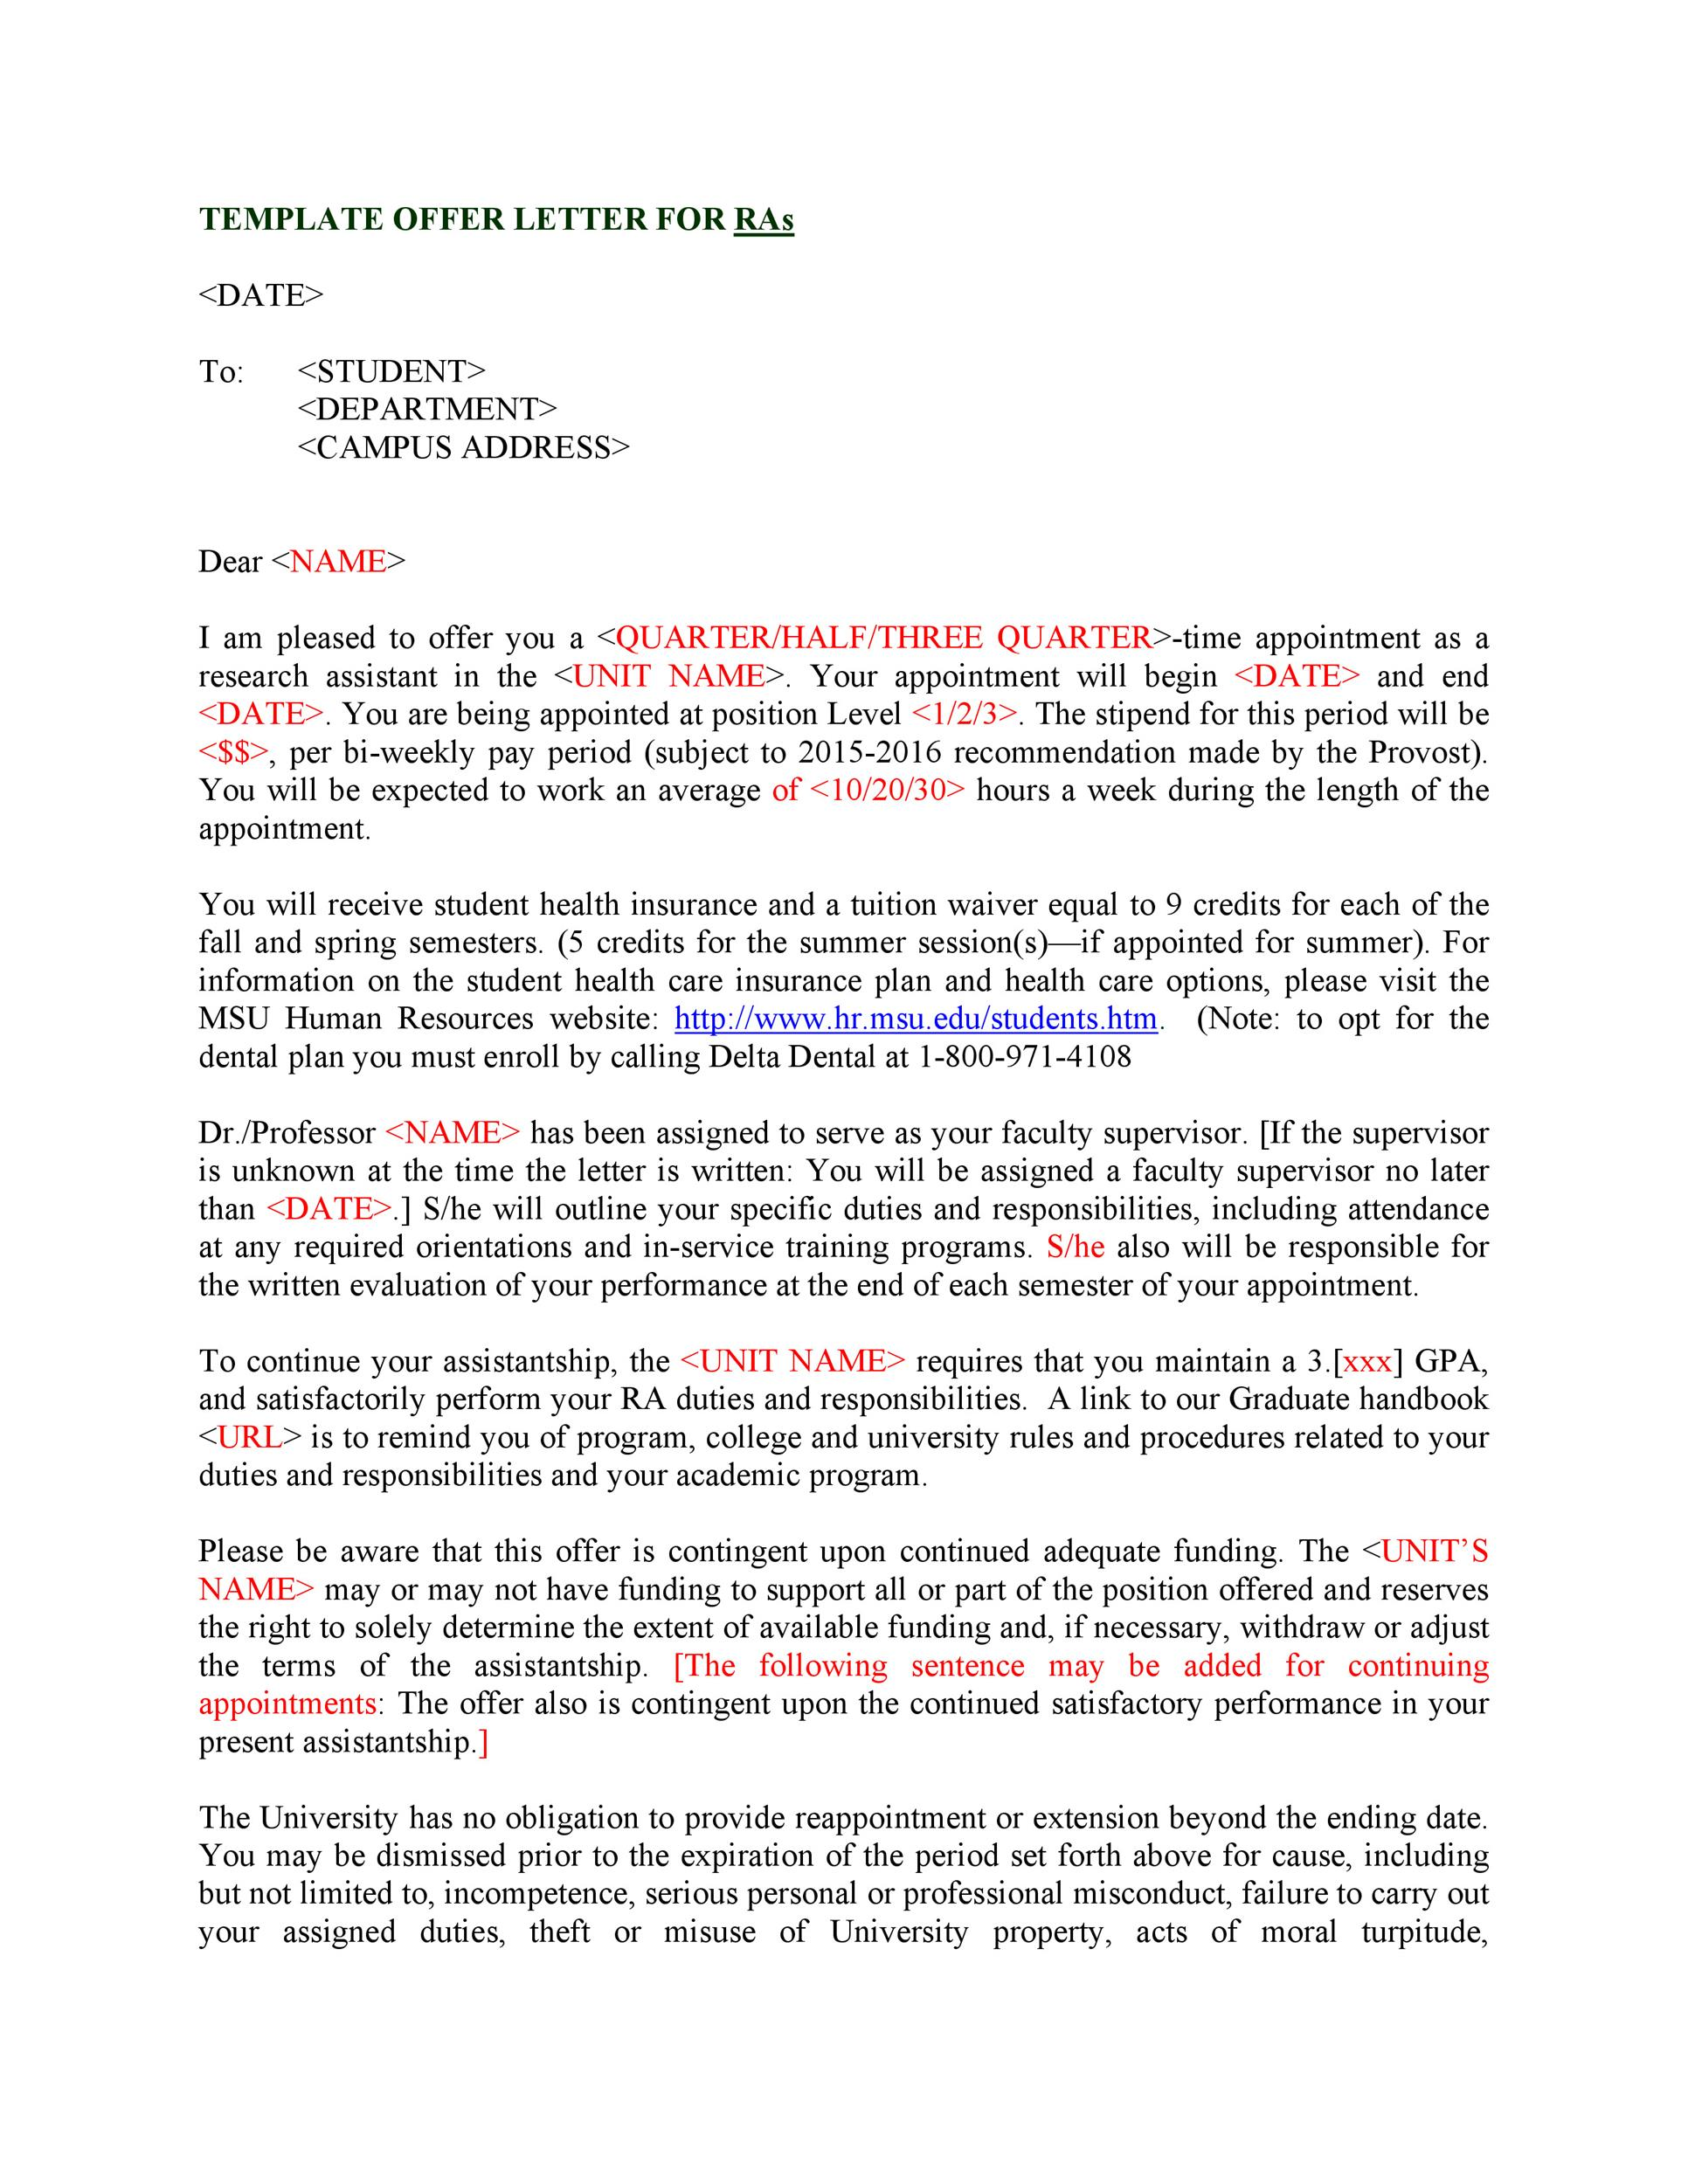 fantastic offer letter templates employment counter offer job offer letter 21